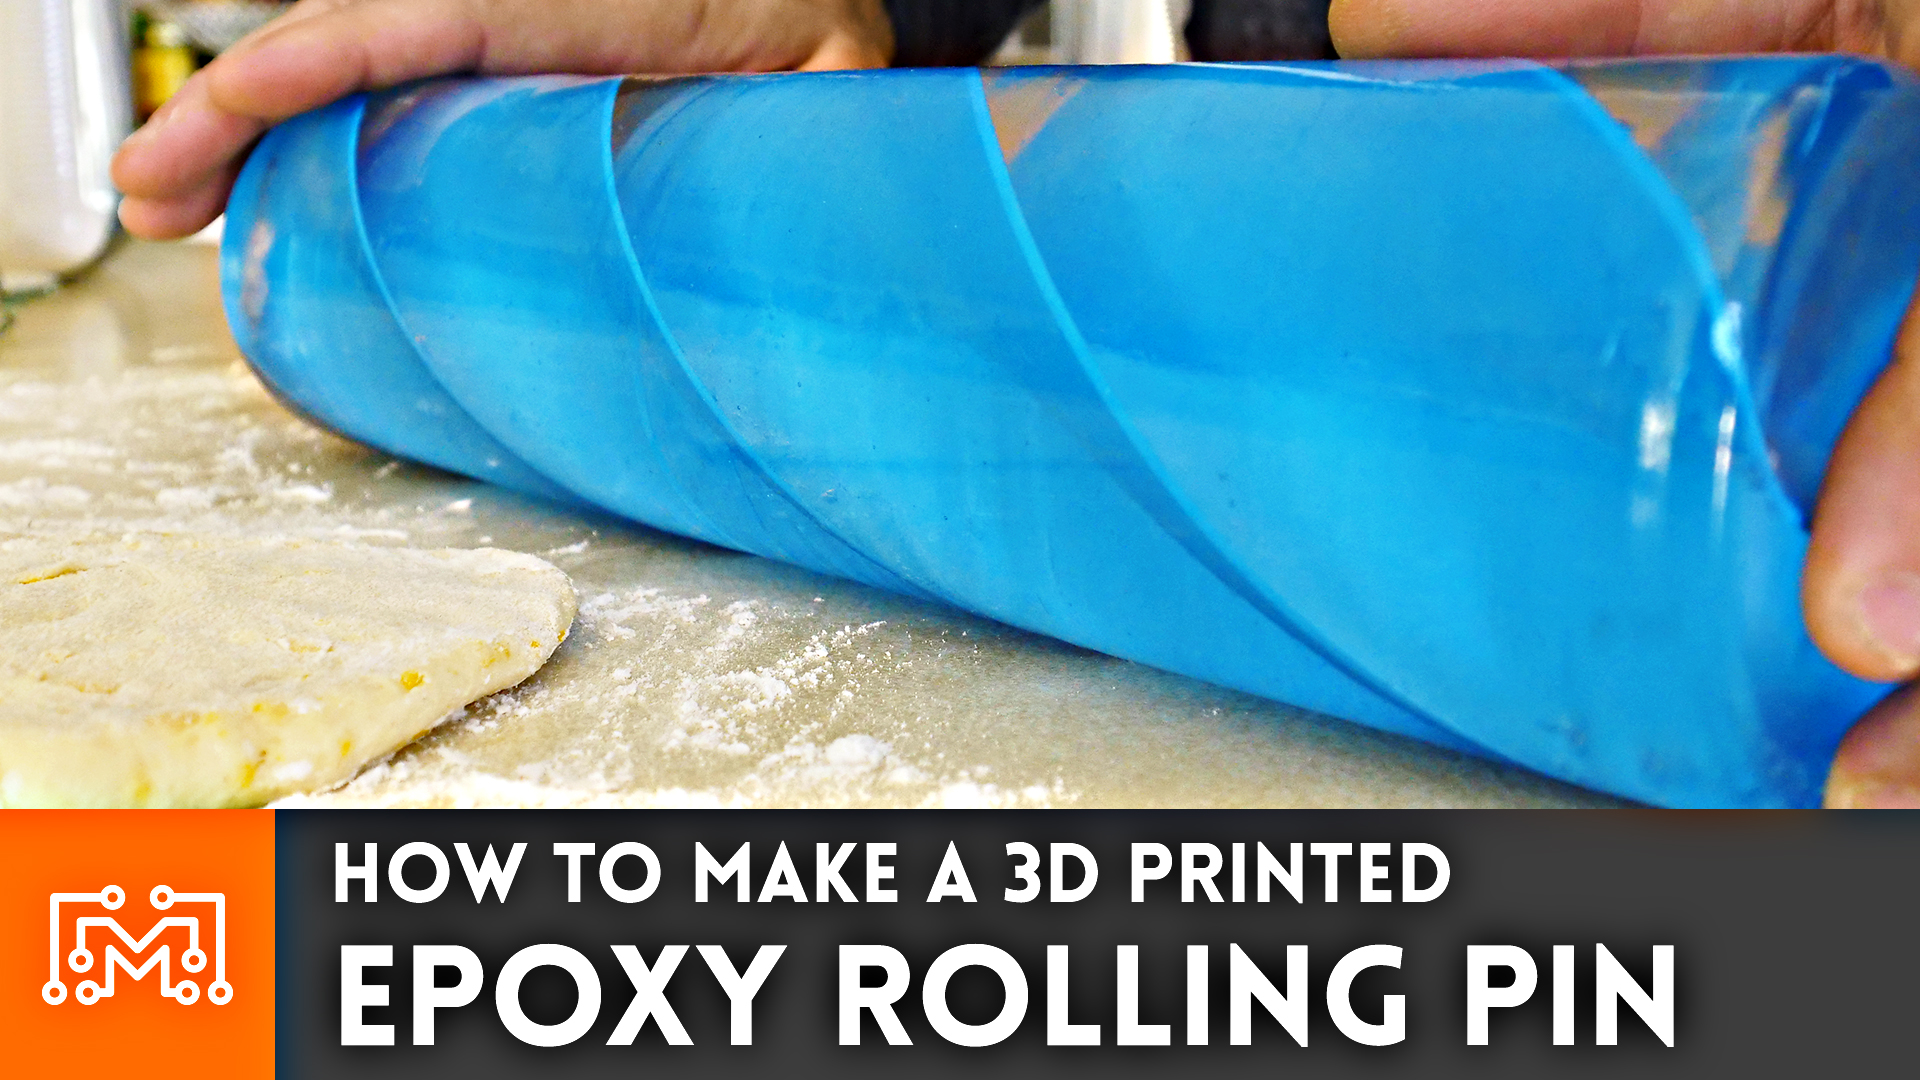 How to Make a 3d Printed Epoxy Rolling Pin - I Like To Make